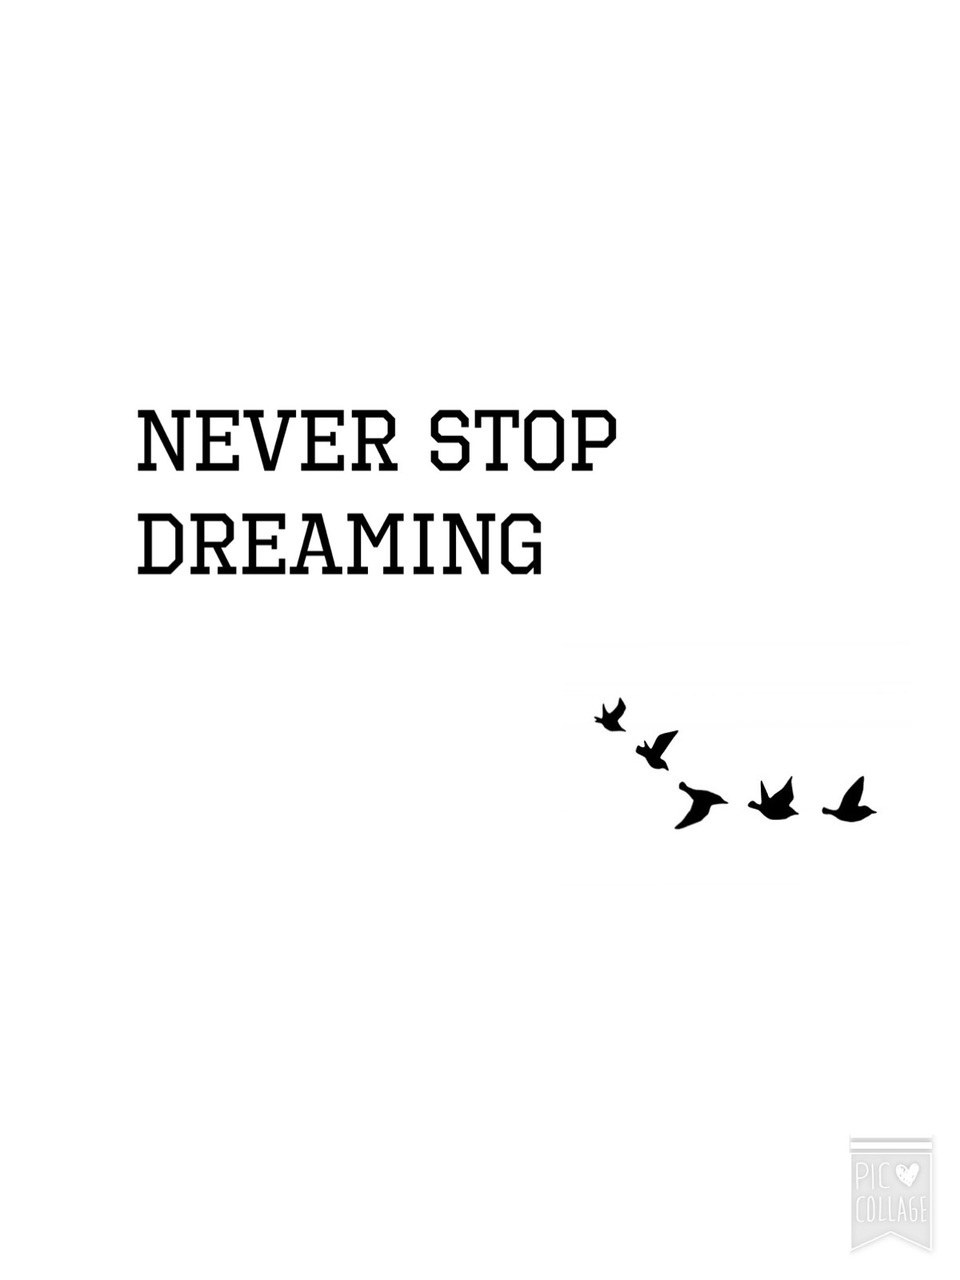 Wallpaper Never Stop Dreaming Discovered By Carolina